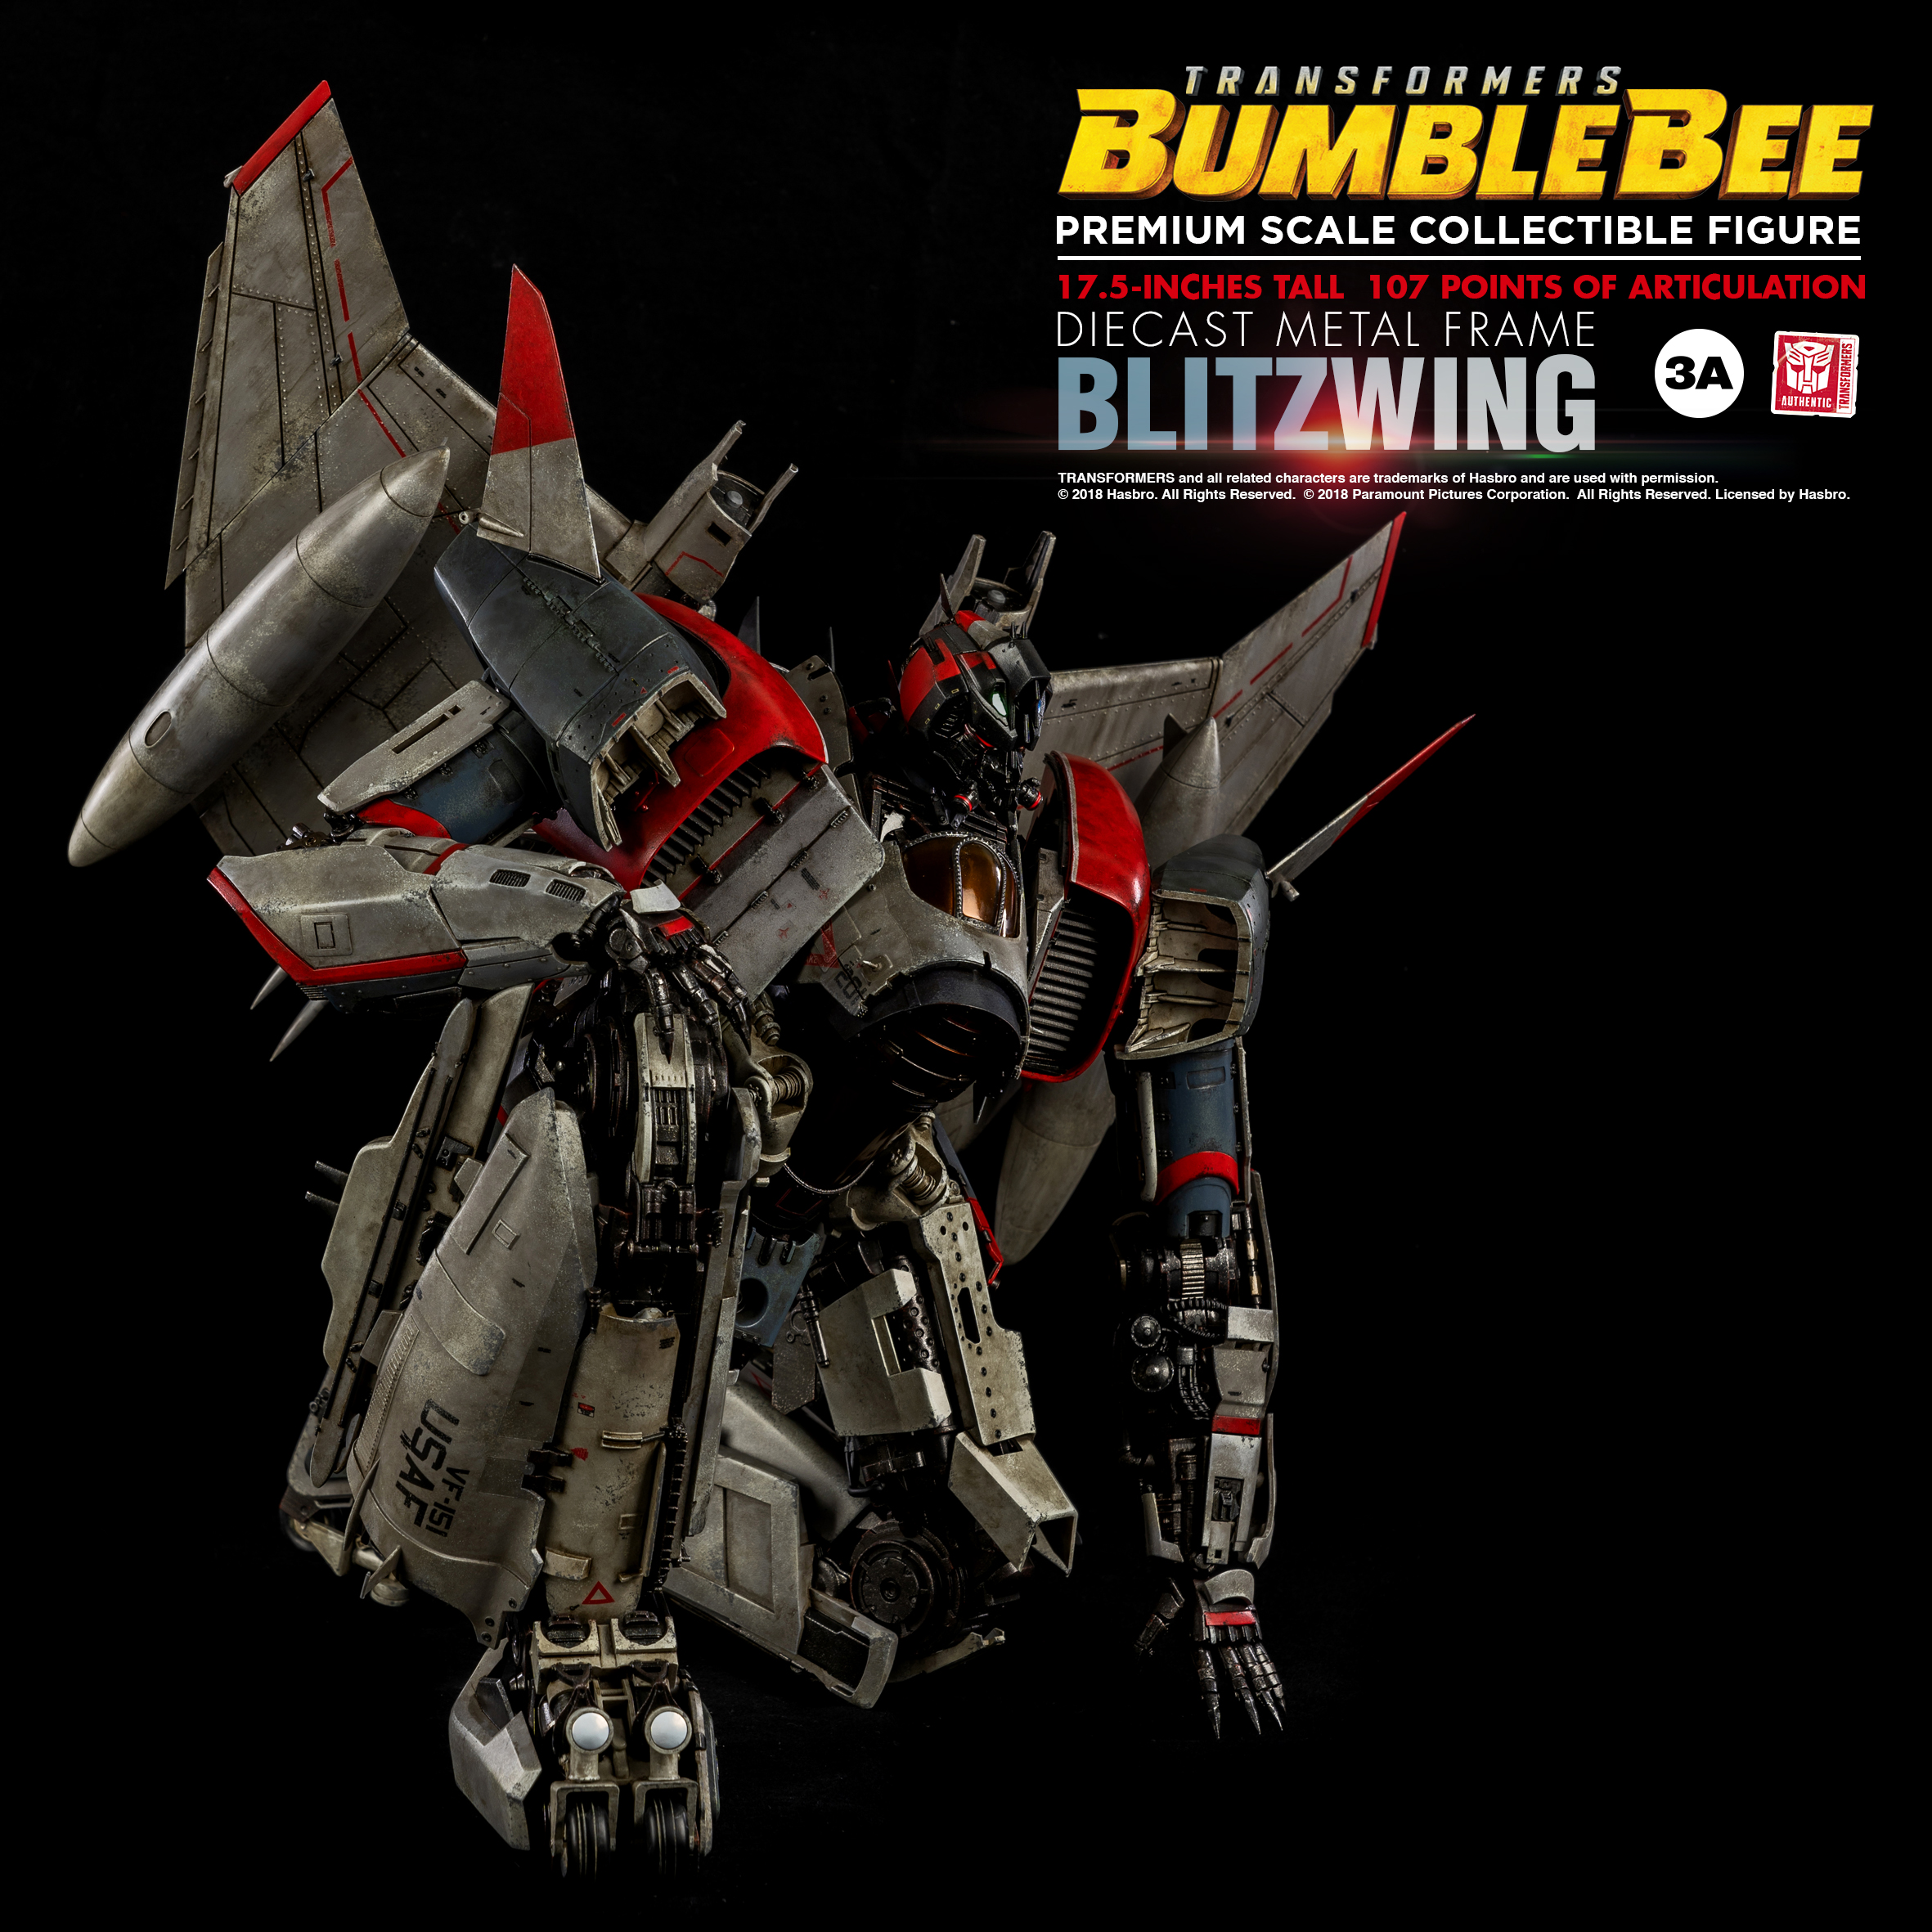 Blitzwing_PM_1119.jpg